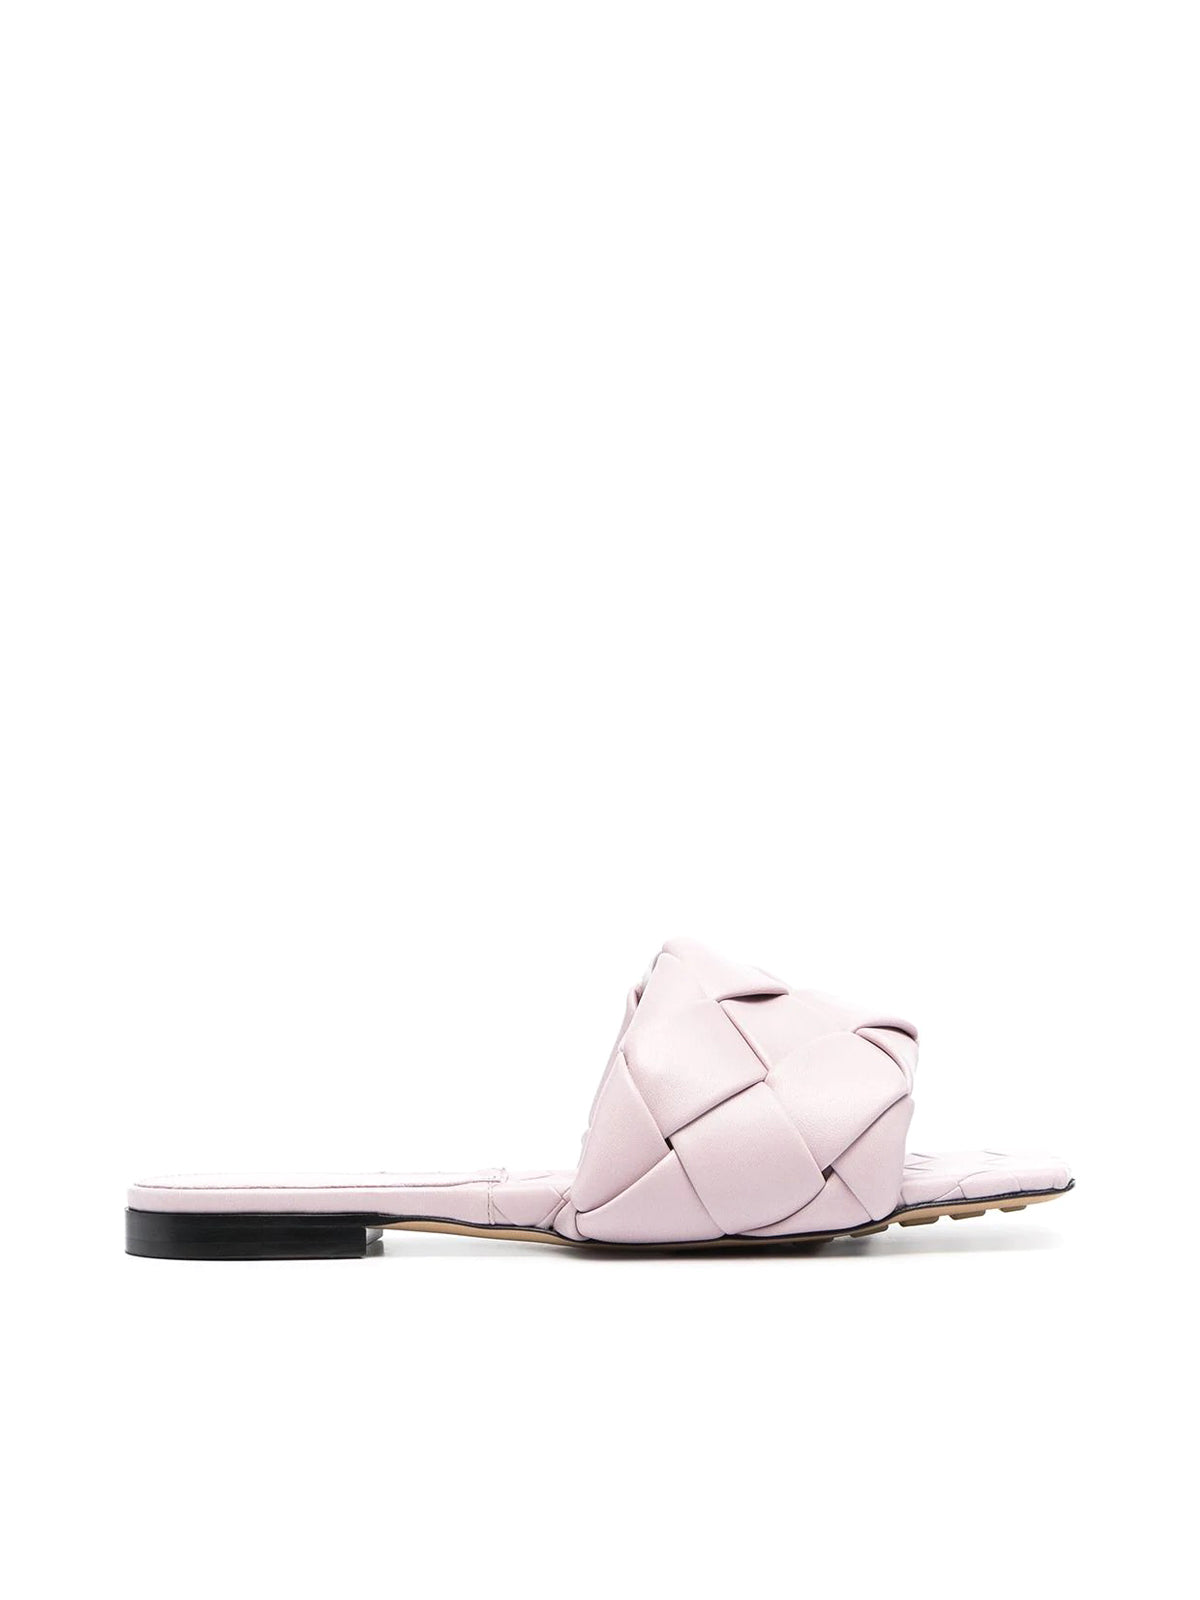 The BV Lido sandals